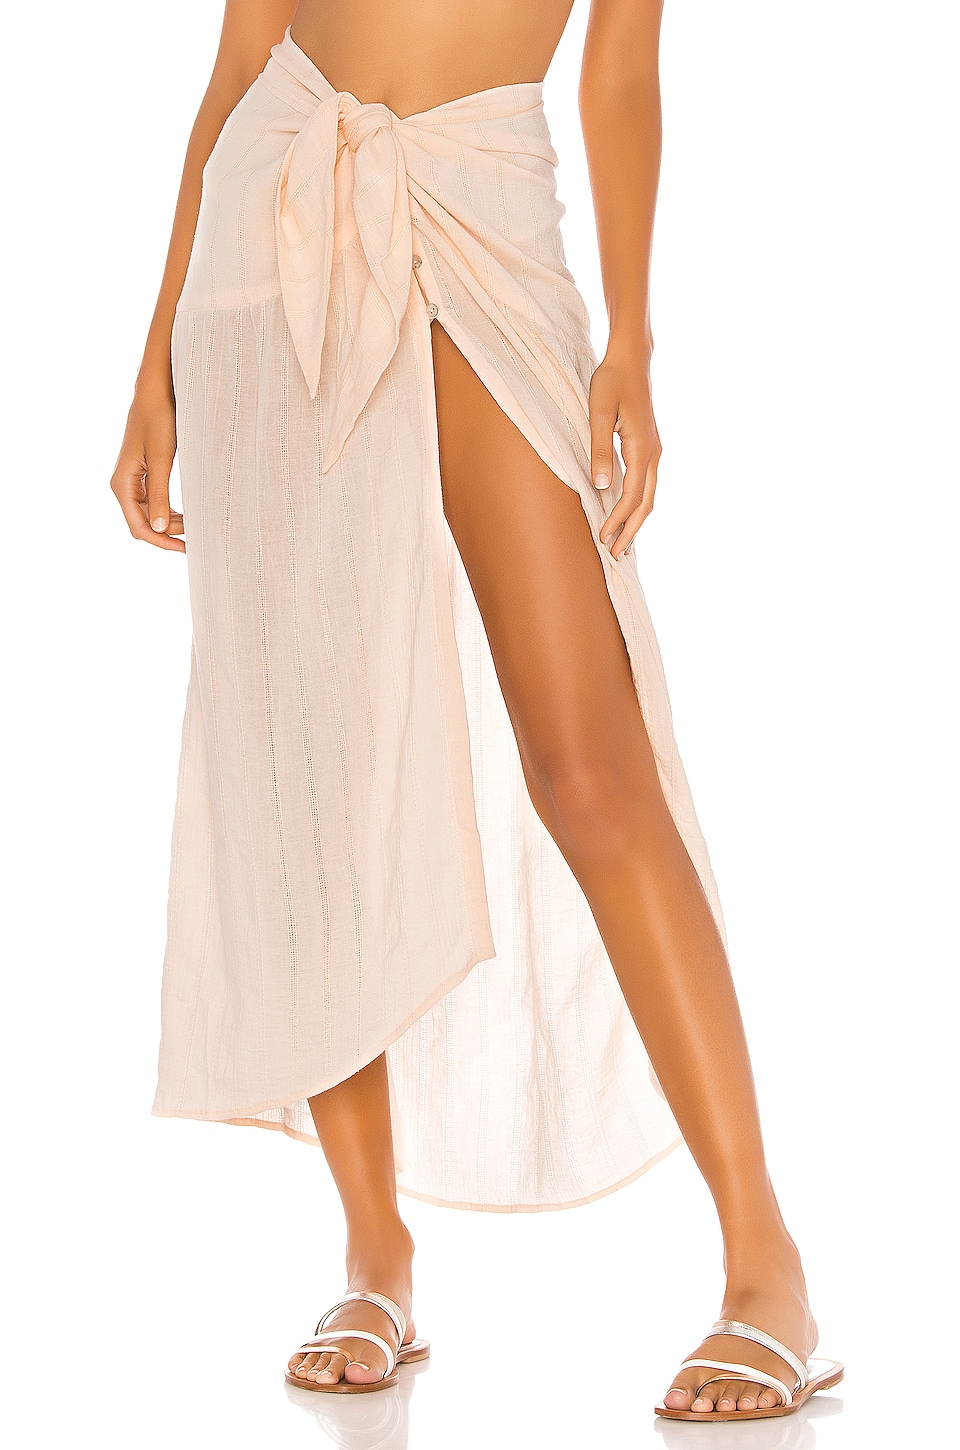 Vix Swimwear Ruffle Pareo Skirt in Vanilla